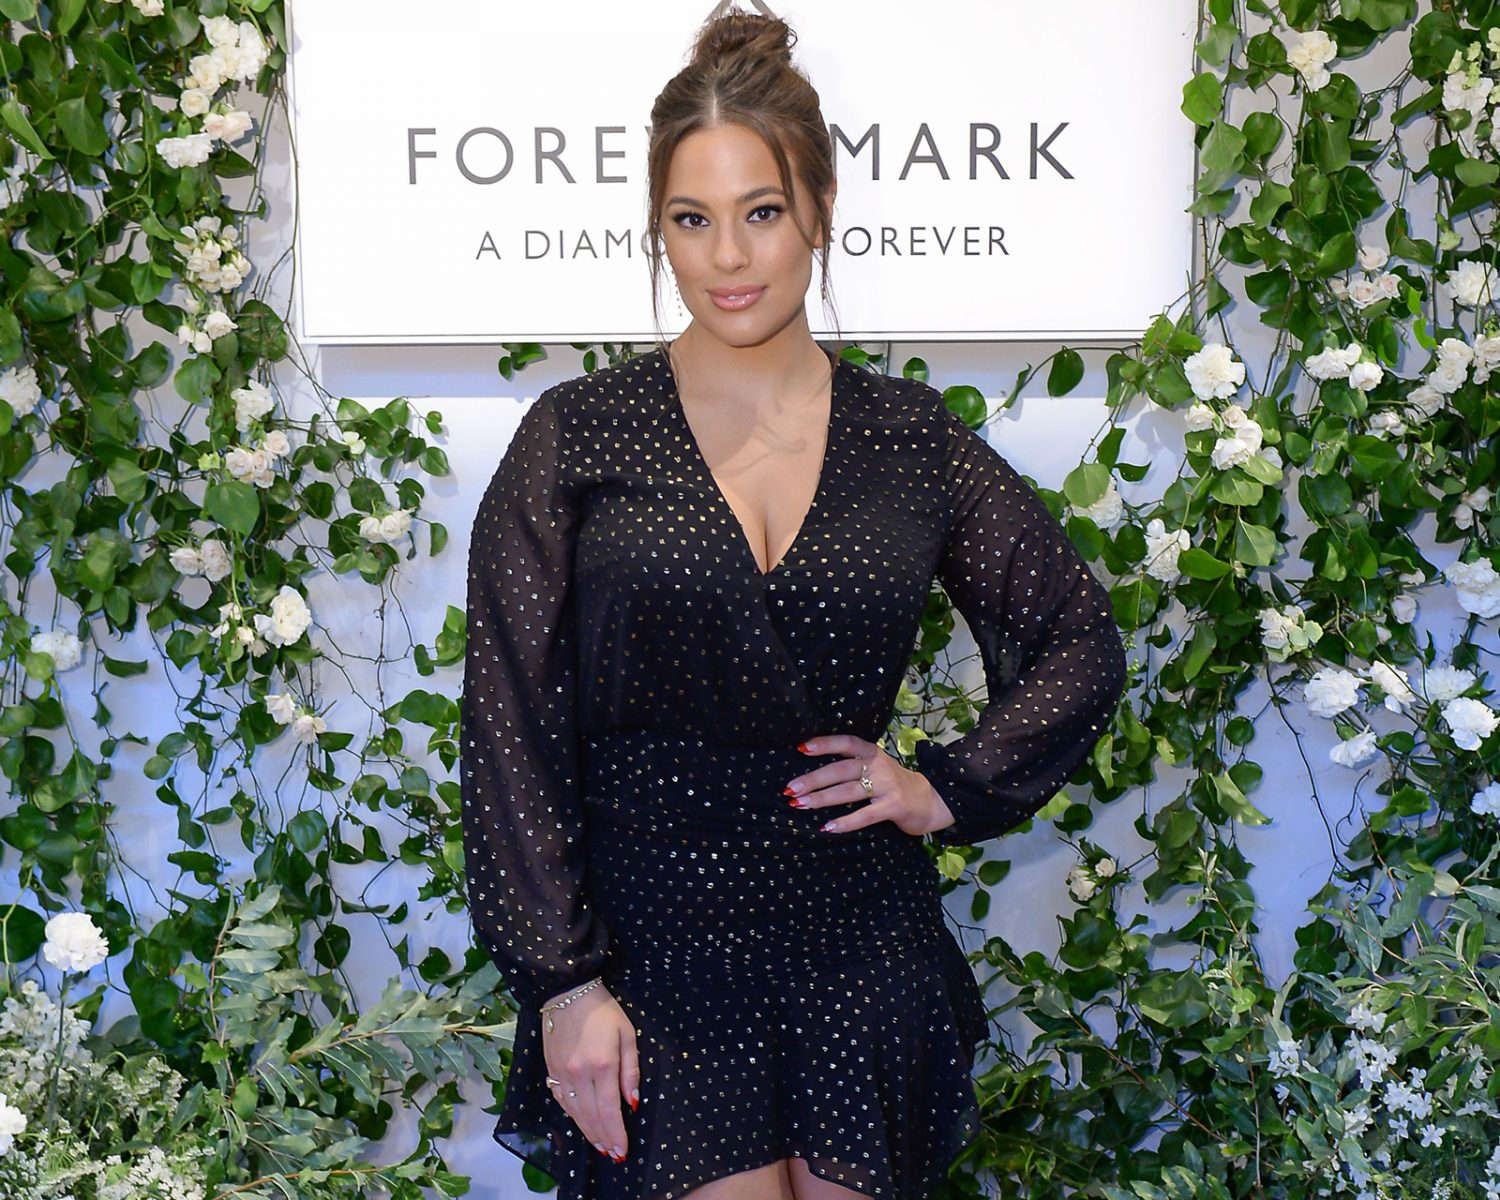 Ashley Graham Wedding.How Ashley Graham S Husband Proposed And Designed Her Ring